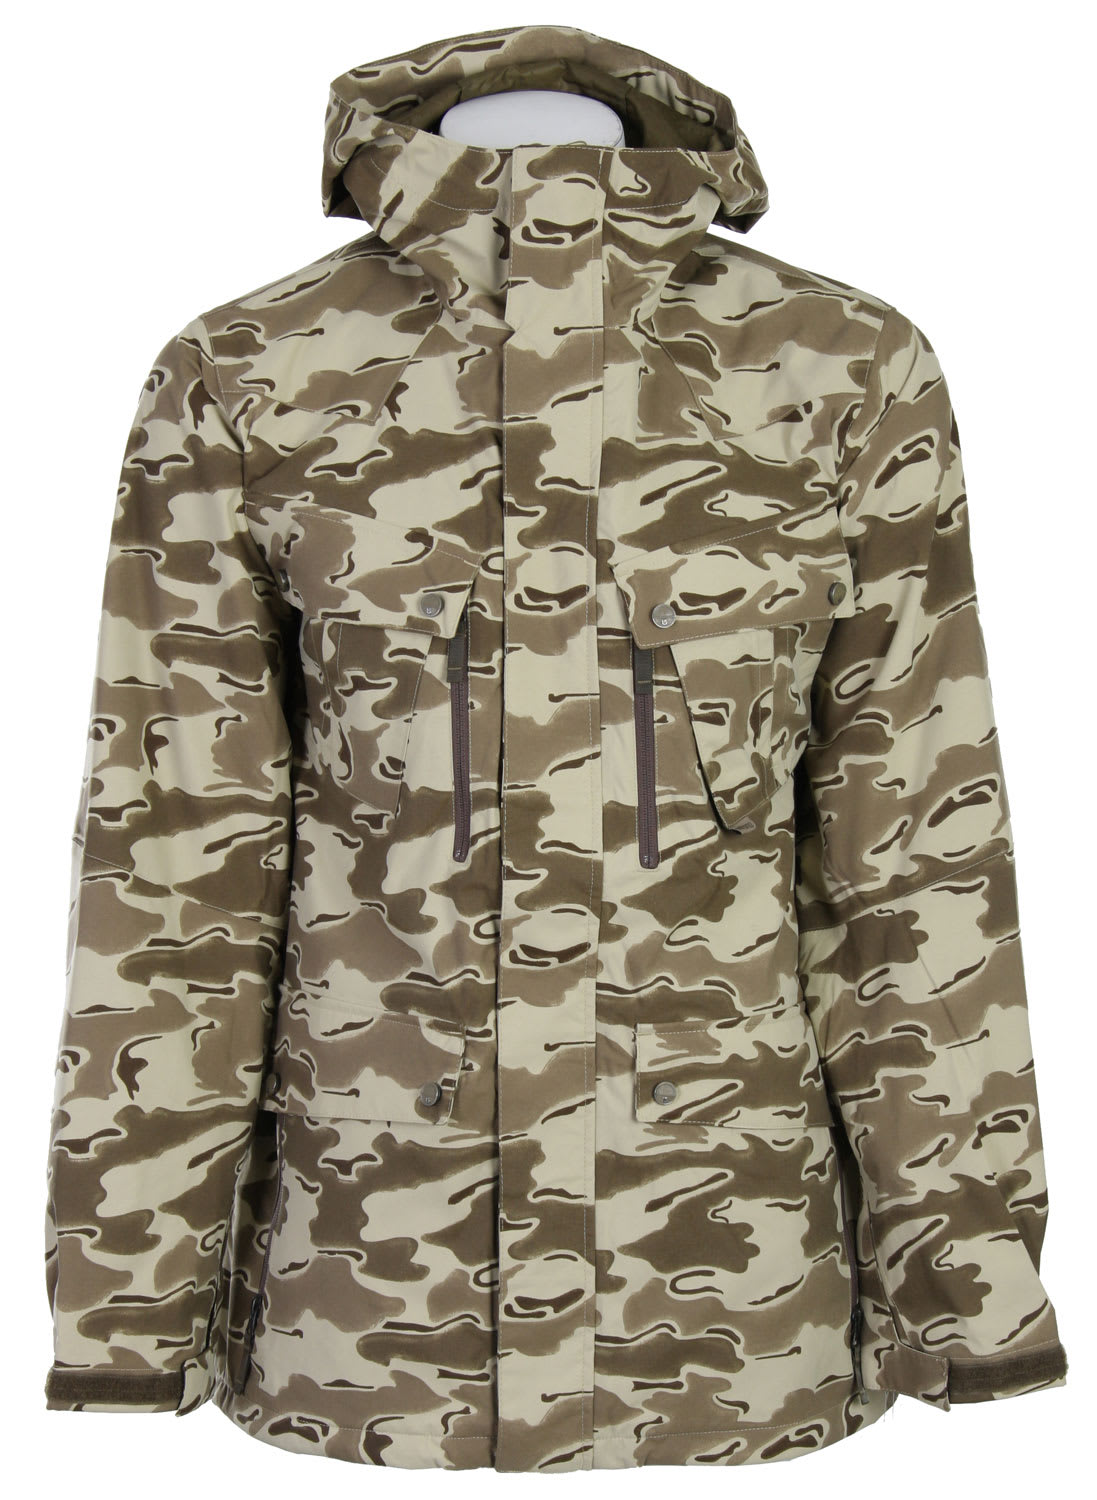 Shop for Burton Traction Snowboard Jacket Shadow Camo Print - Men's